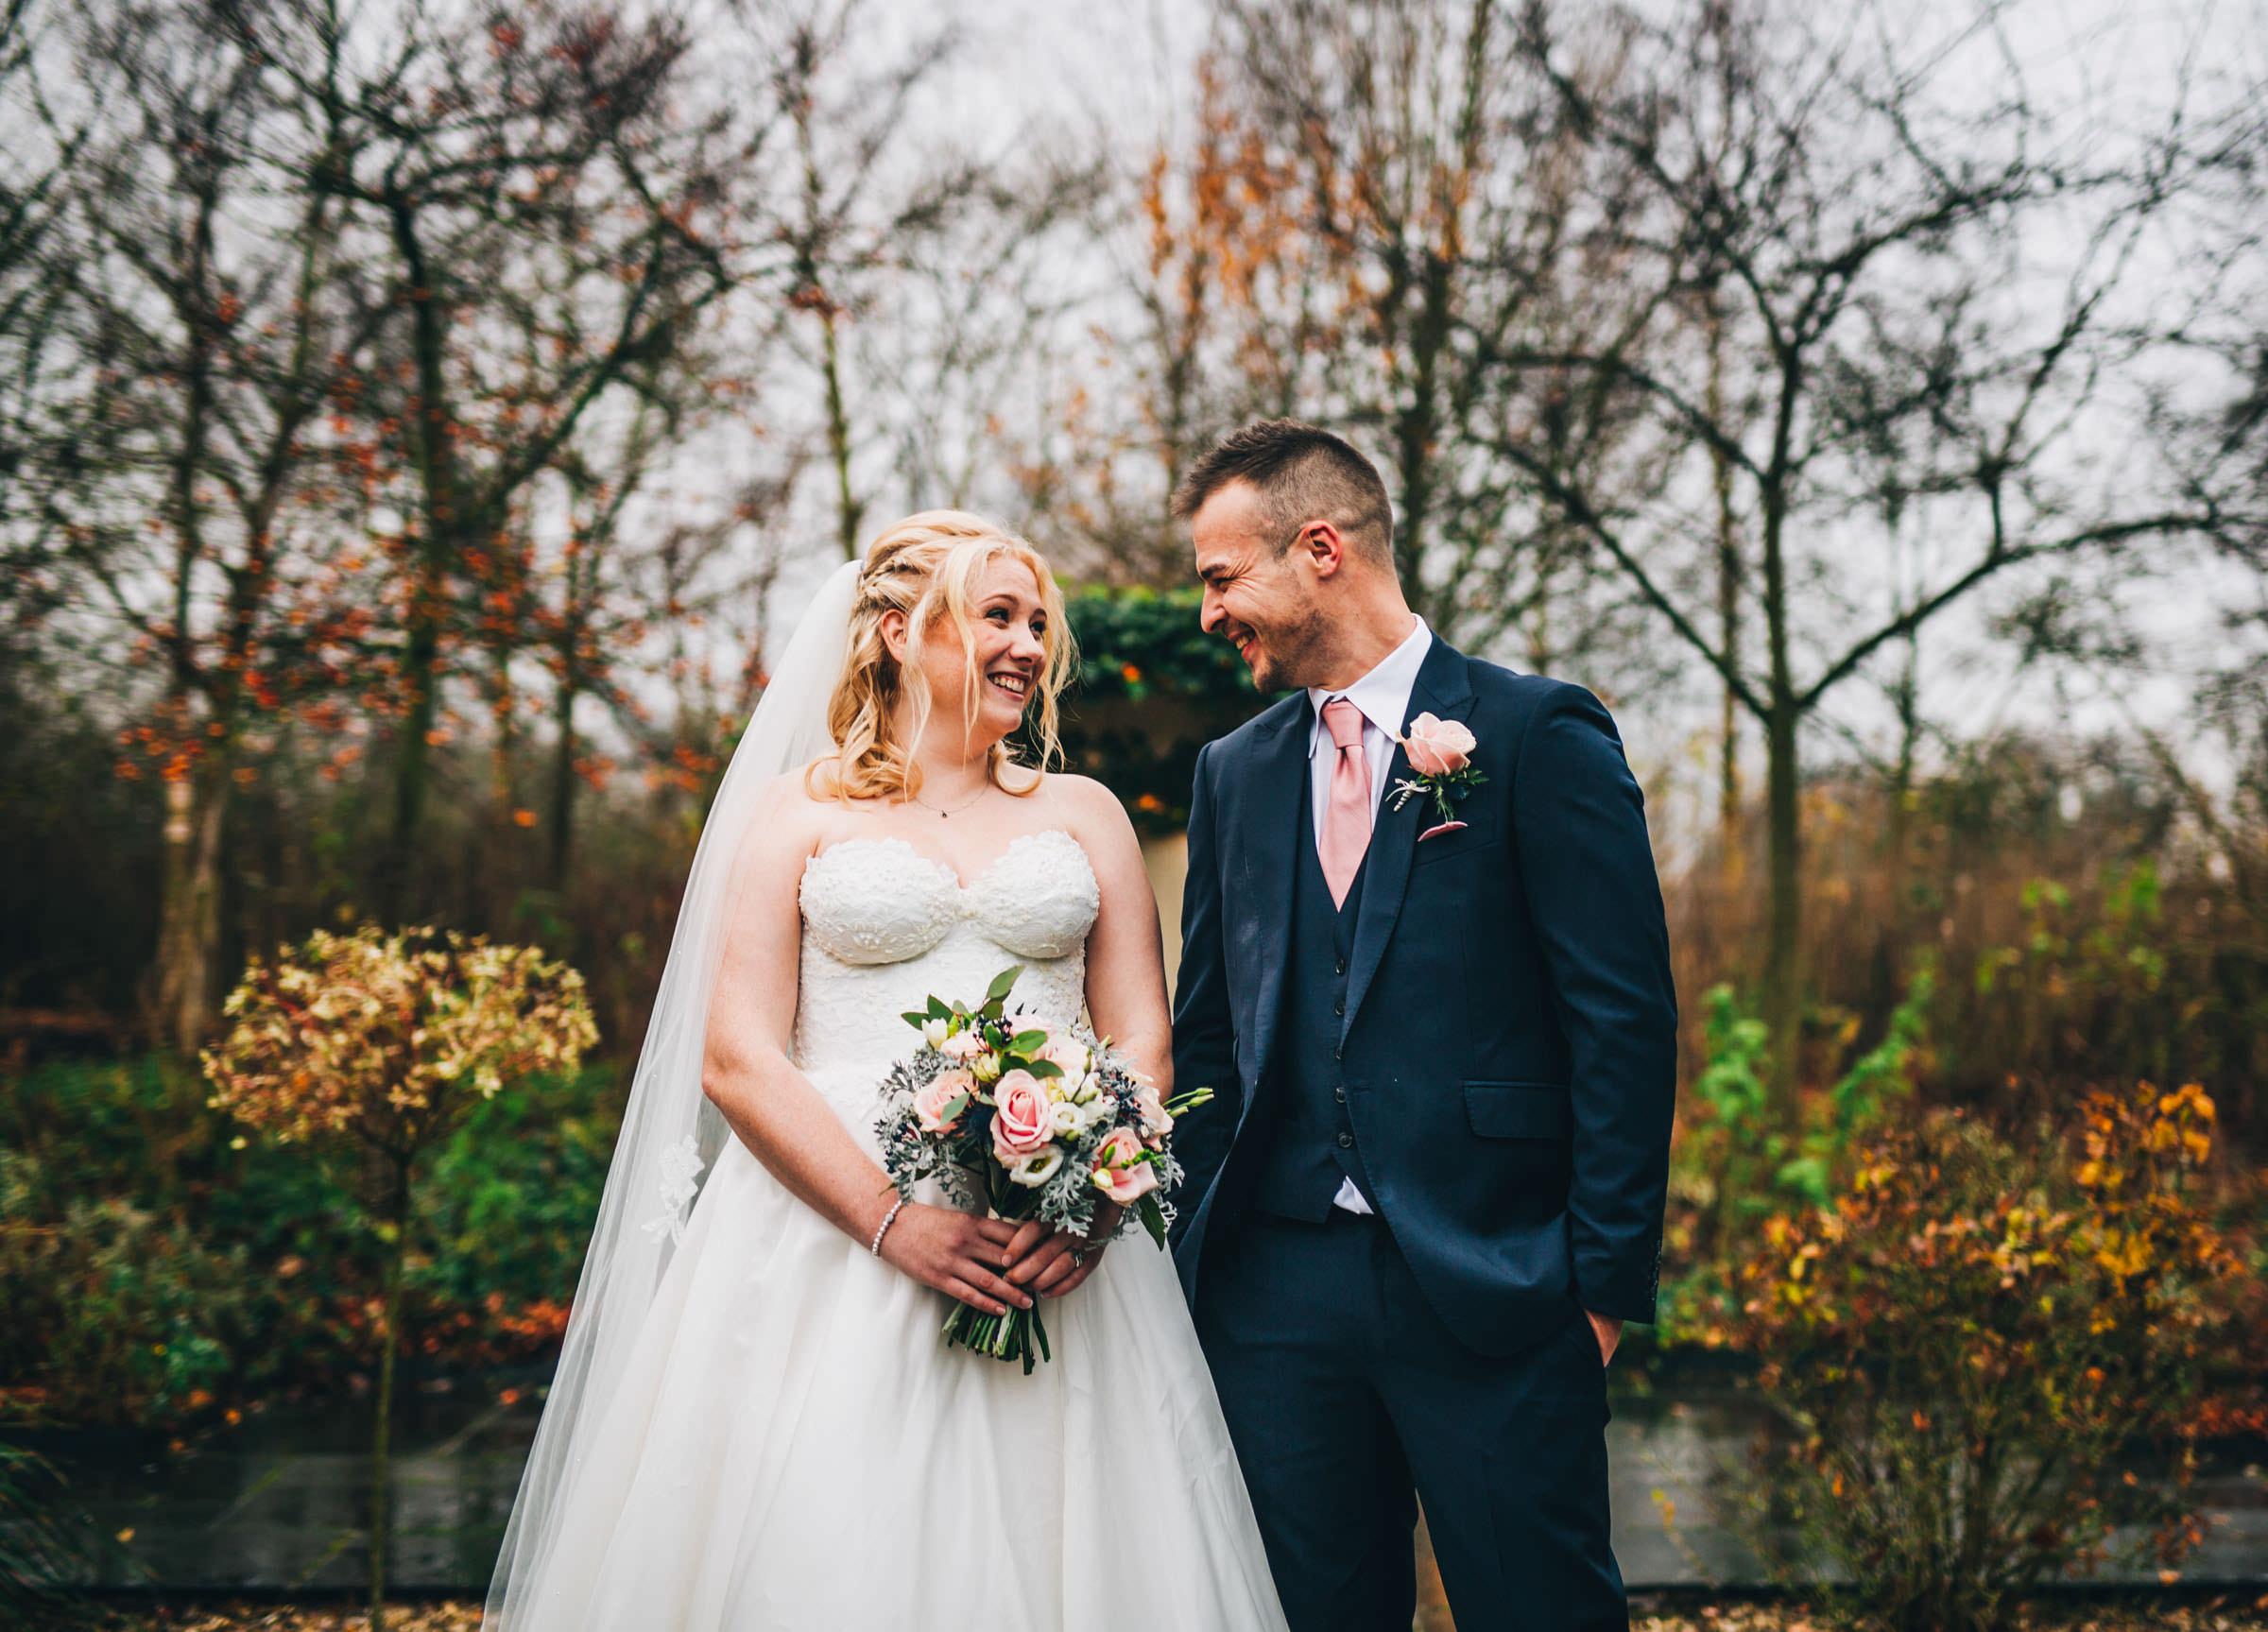 fun and quirky wedding photography - bride and groom